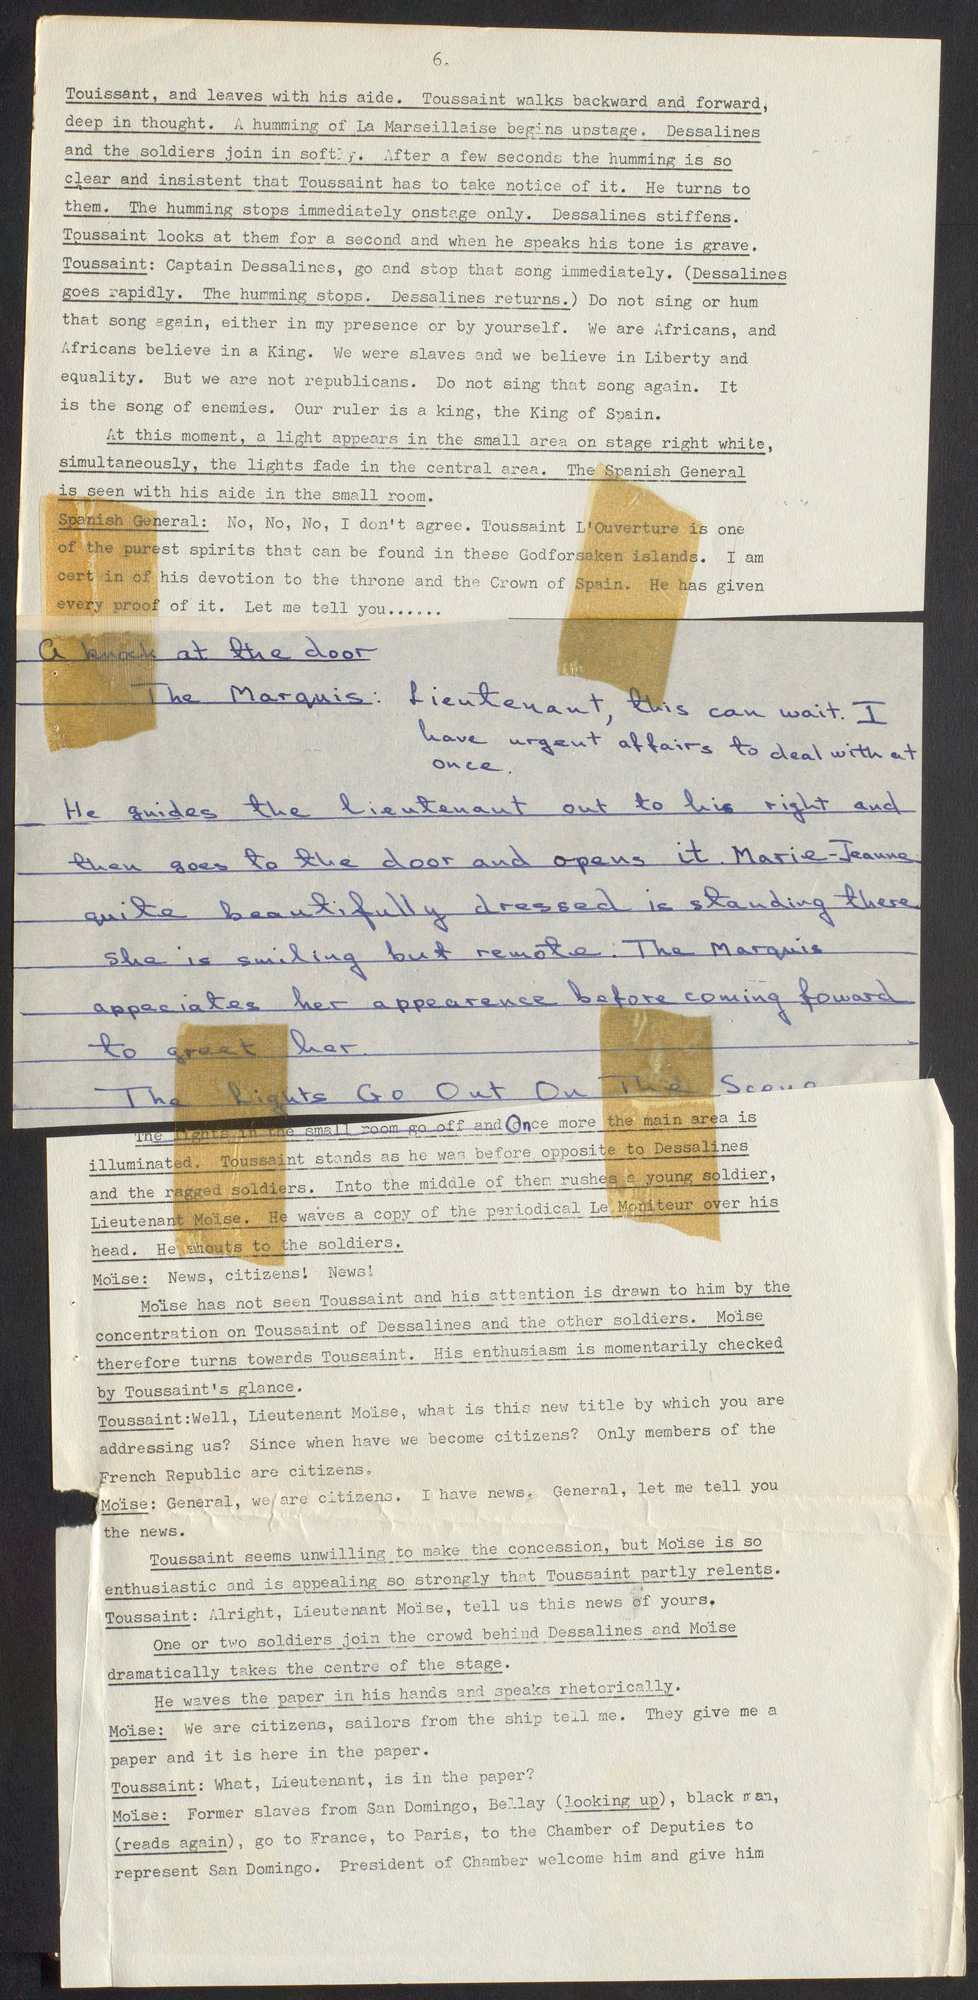 Page 6 from a typescript of The Black Jacobins play by C L R James, 1967, showing a scene featuring Moïse with handwritten text sellotaped between two typed half pages